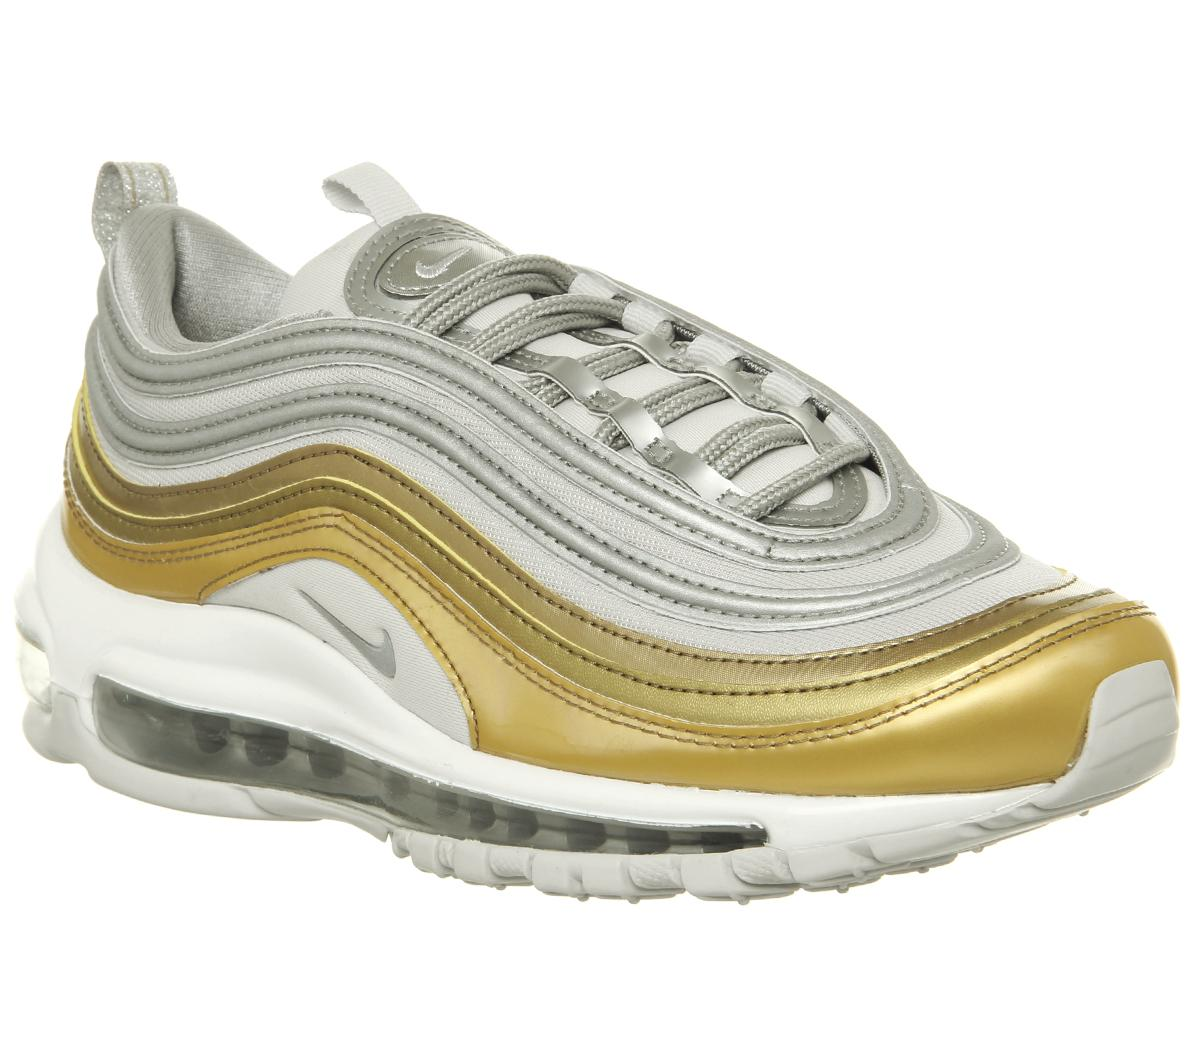 3e1c74a9a3448 Womens Nike Air Max 97 Vast Grey Mtlc Silver Gold Summit White Uk Size –  OFFCUTS SHOES by OFFICE